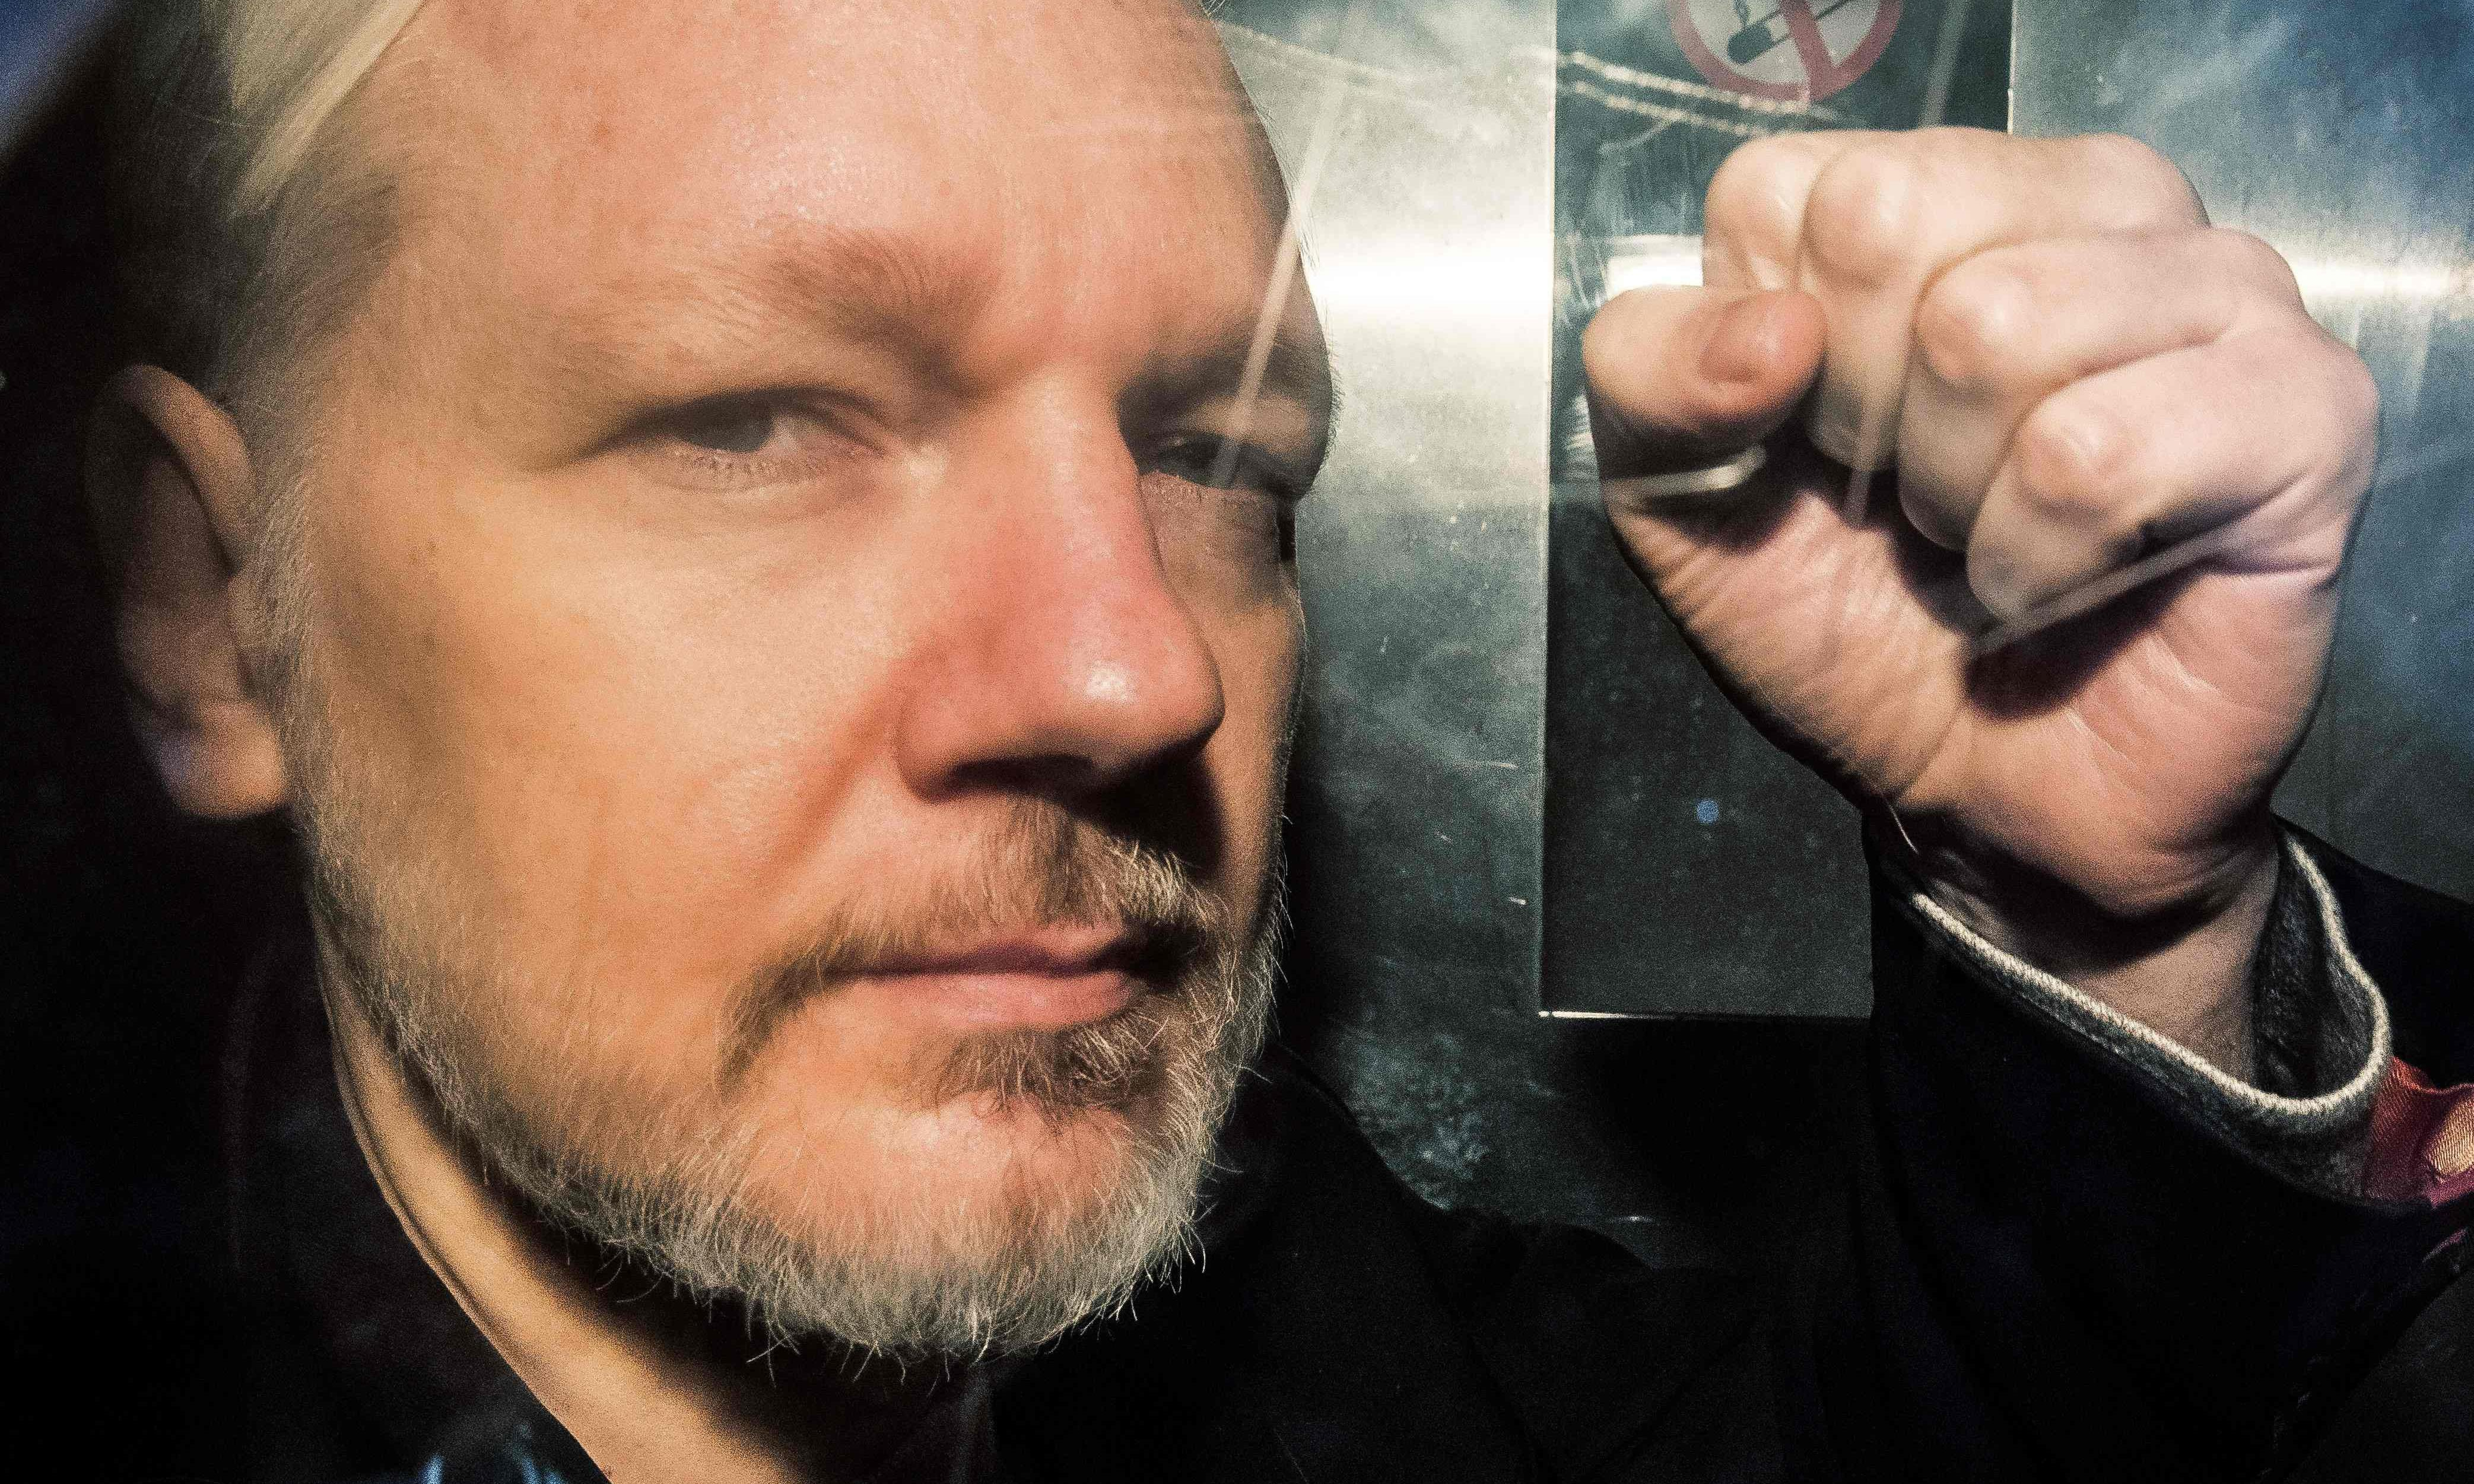 Julian Assange to remain in jail pending extradition to US